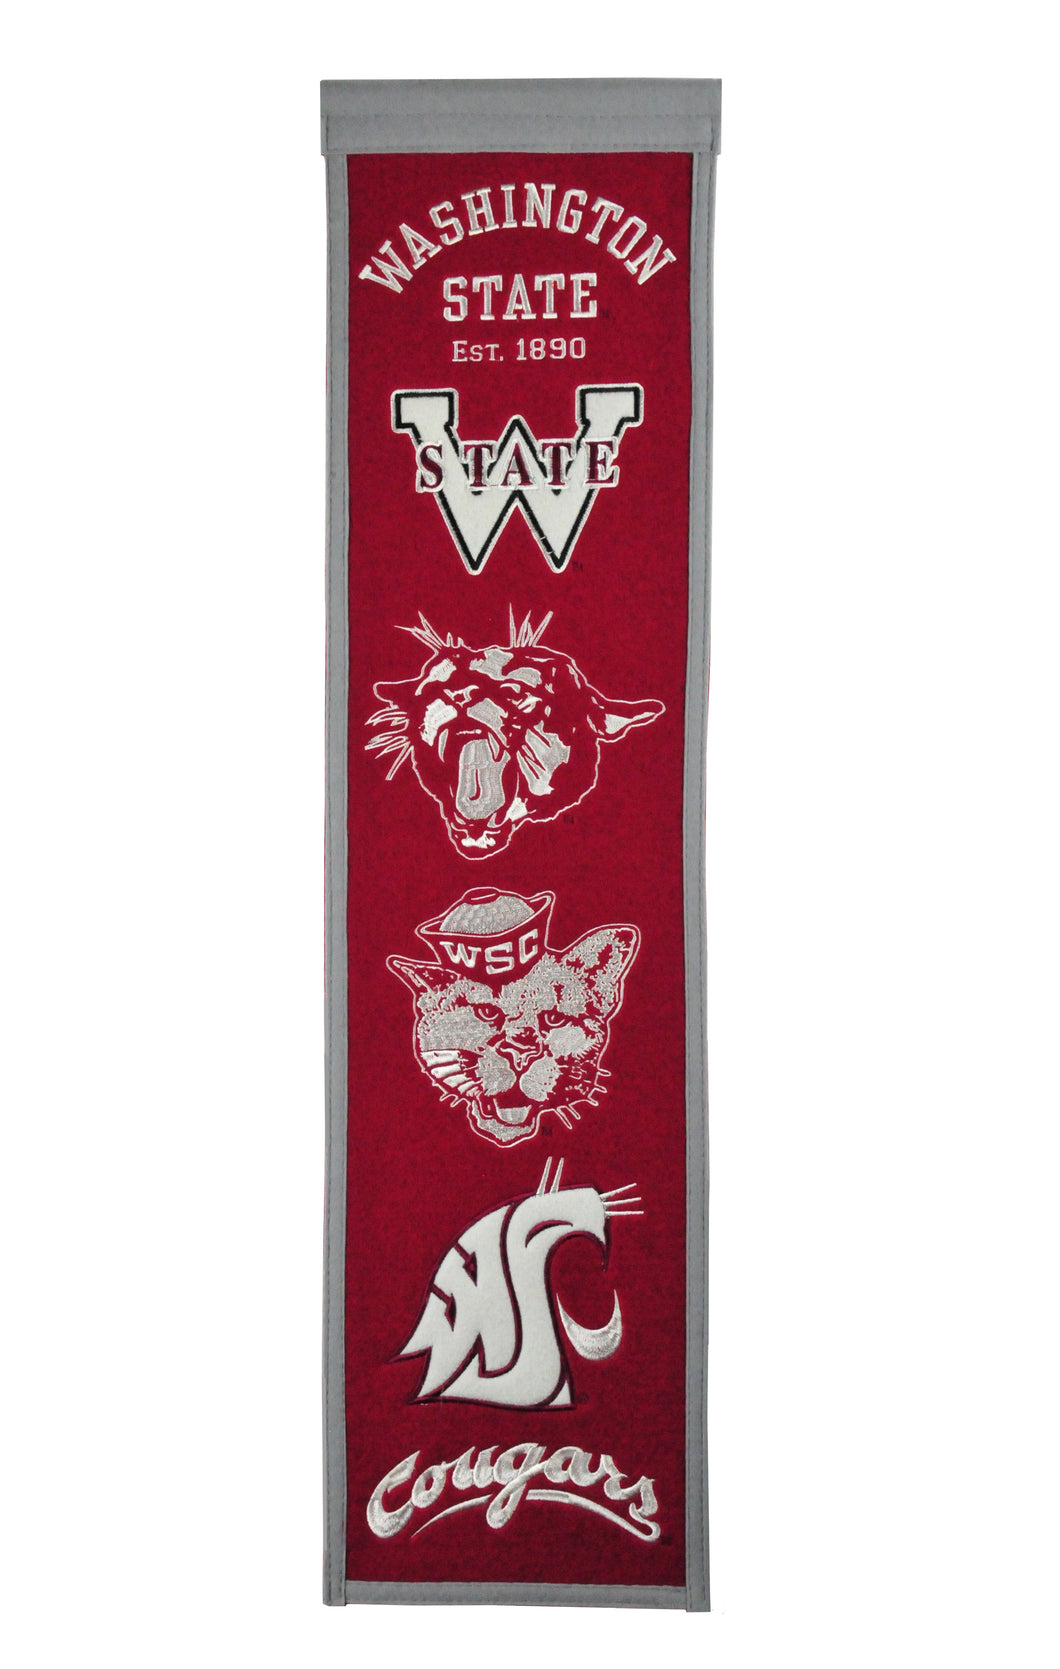 Washington State Cougars Heritage Banner - 8